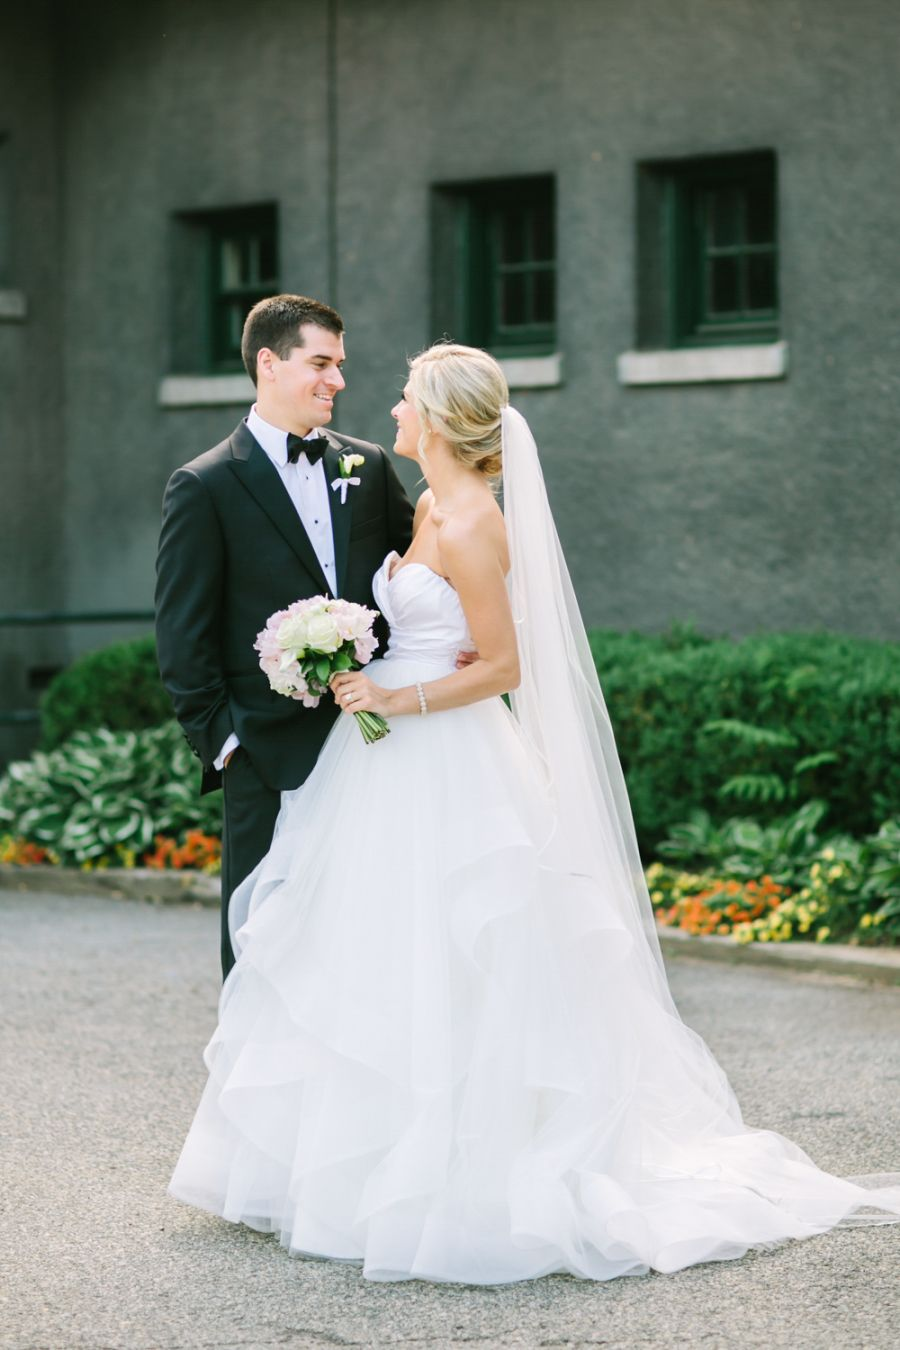 Photography: Love & Light Photographs - www.loveandlightphotographs.com Floral Design: Jardiniere Fine Flowers - jfineflowers.com Wedding Dress: Hayley Paige - www.jlmcouture.com/Hayley-Paige   Read More on SMP: http://www.stylemepretty.com/2016/02/29/classic-black-tie-wedding-with-pretty-pink-peonies/